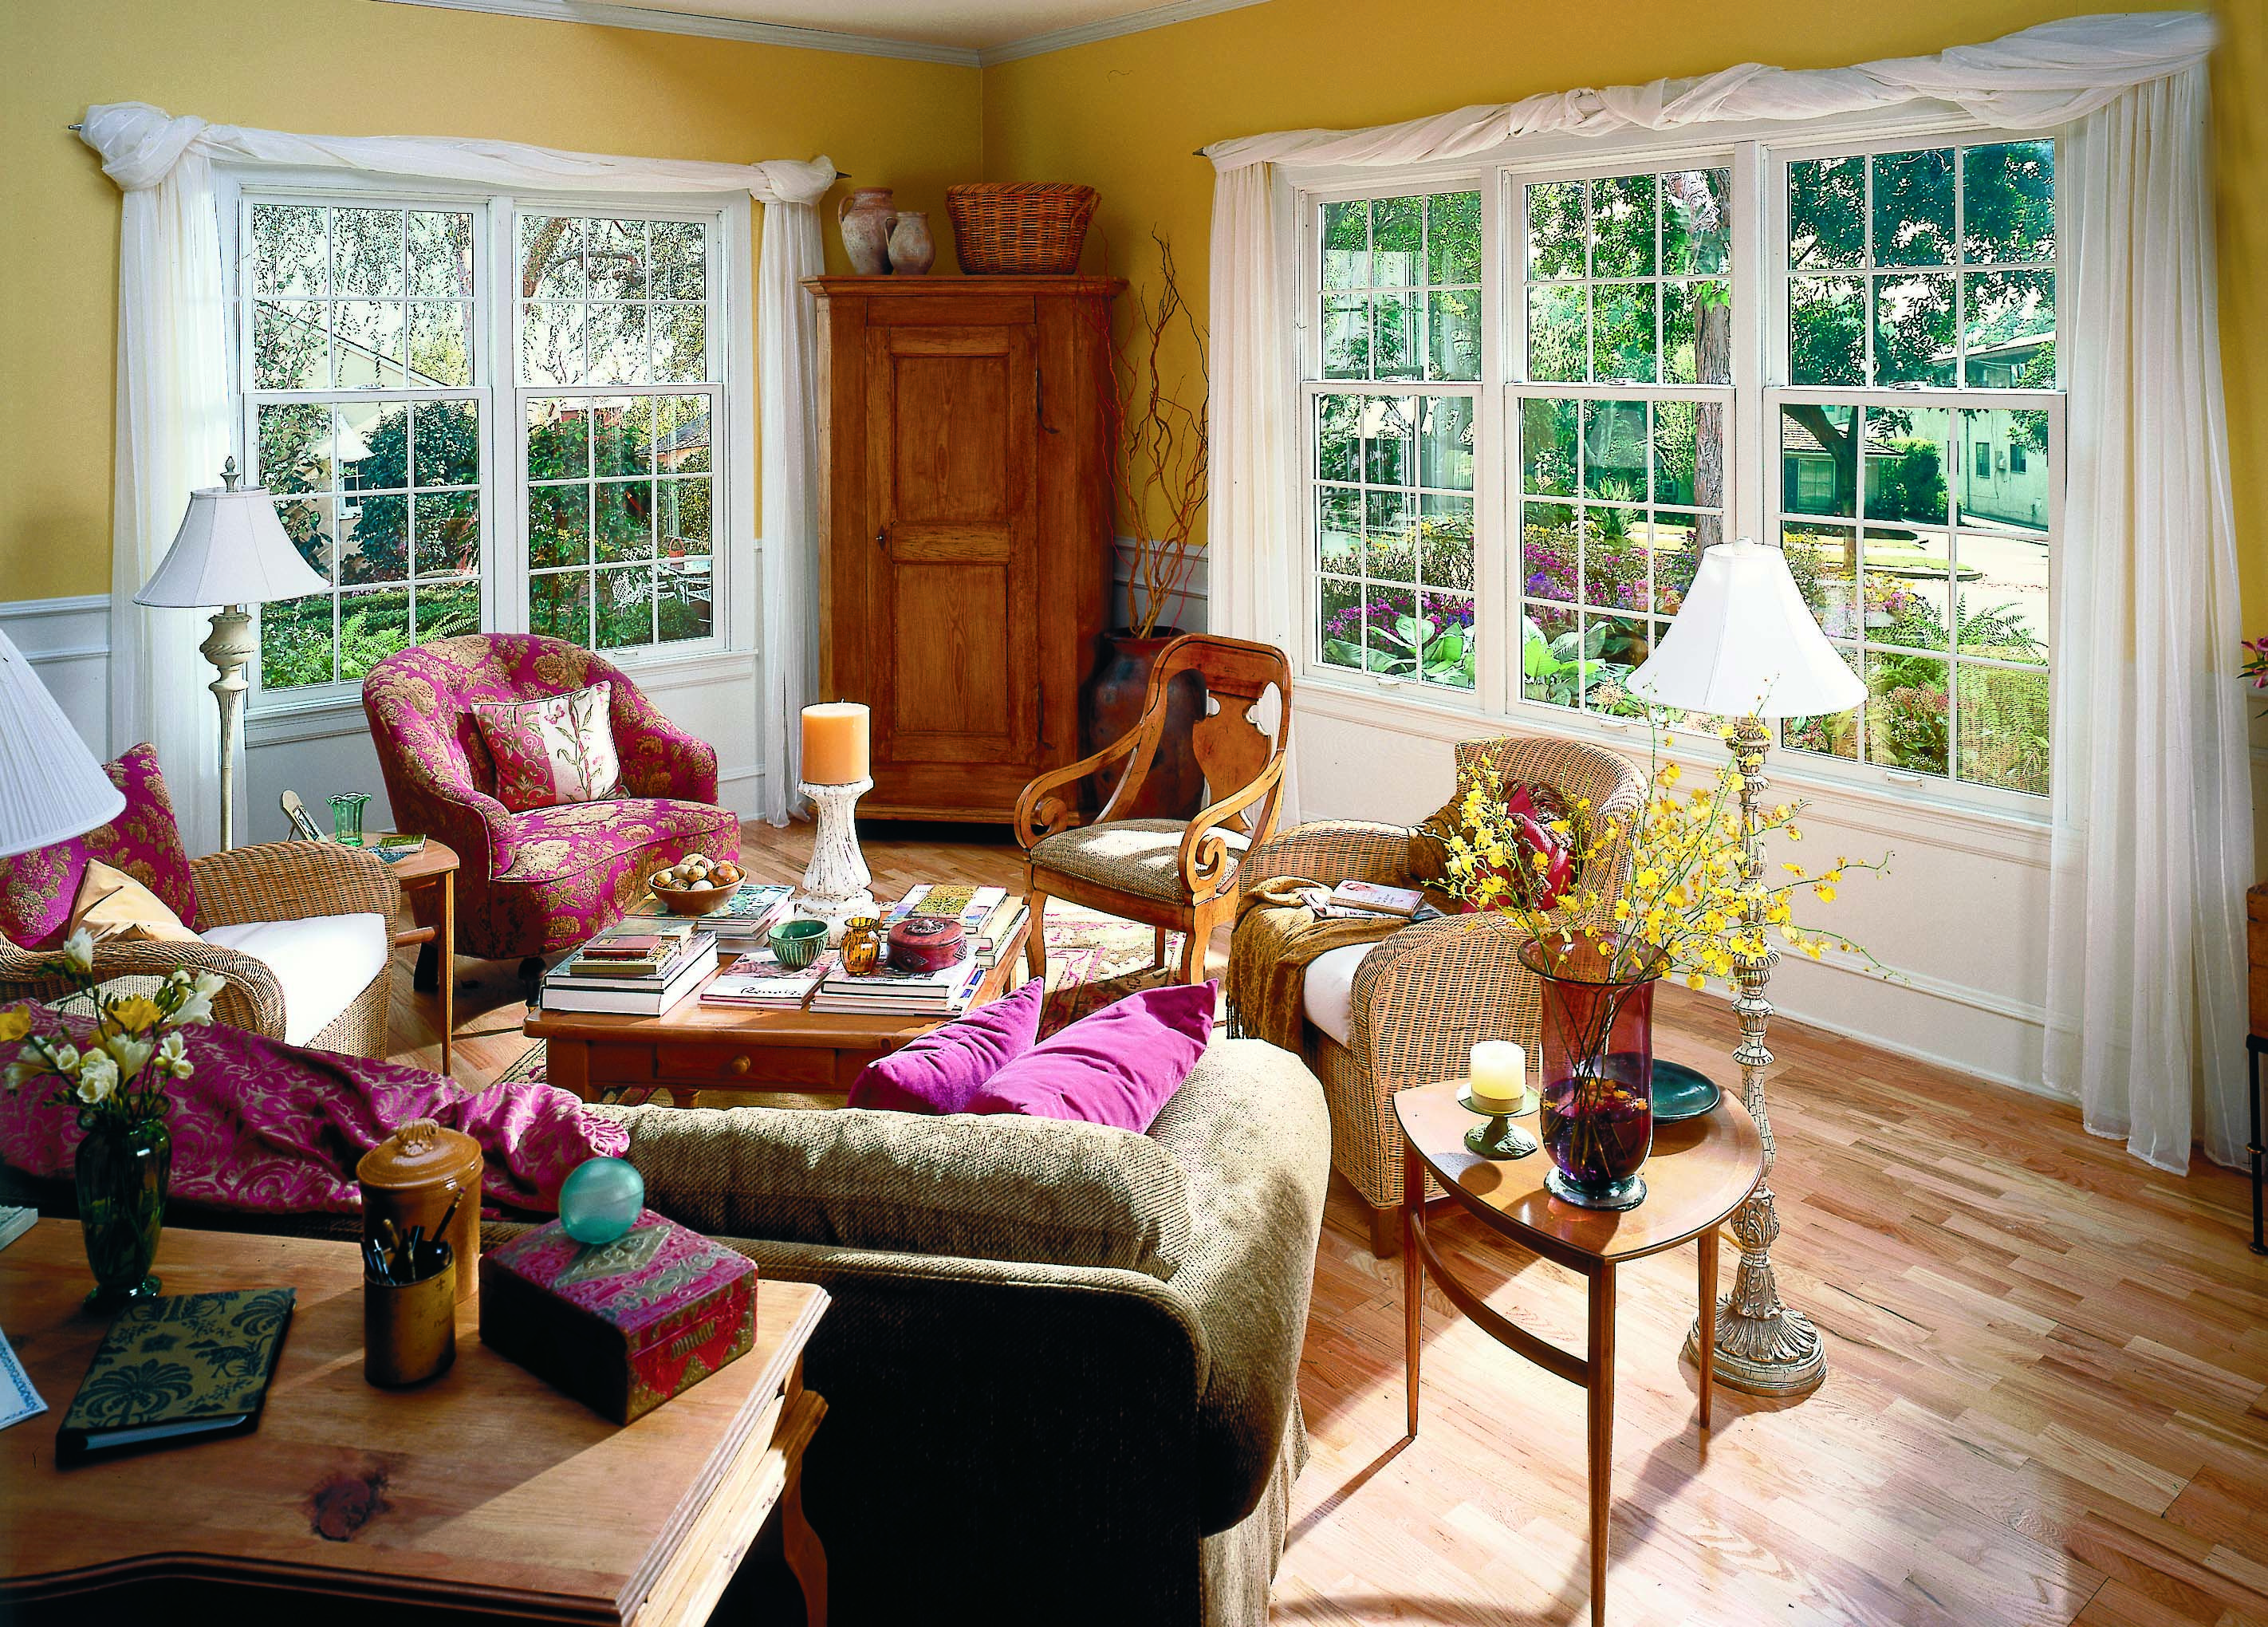 What Sets Renewal By Andersen Apart Is Our Focus On The Whole Window Performance For Improved C Double Hung Double Hung Replacement Windows Double Hung Windows